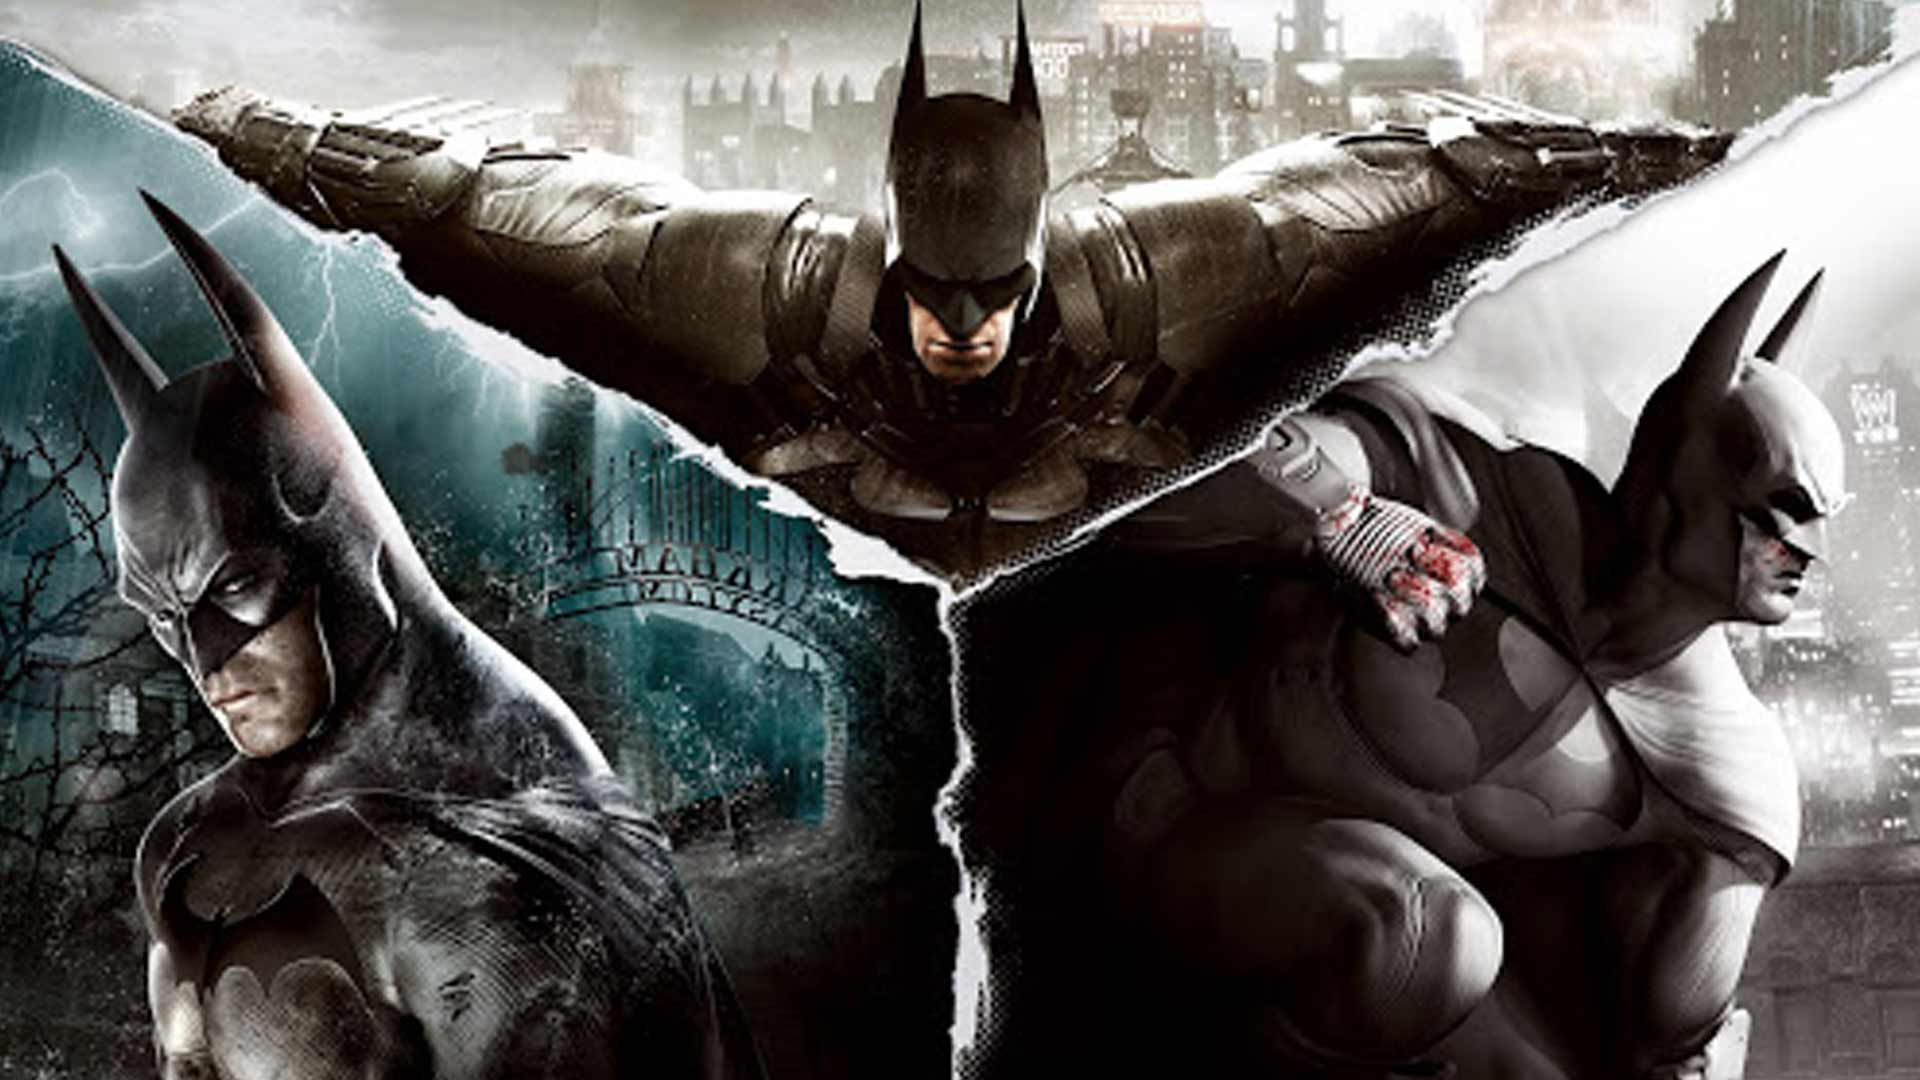 Batman: Arkham series